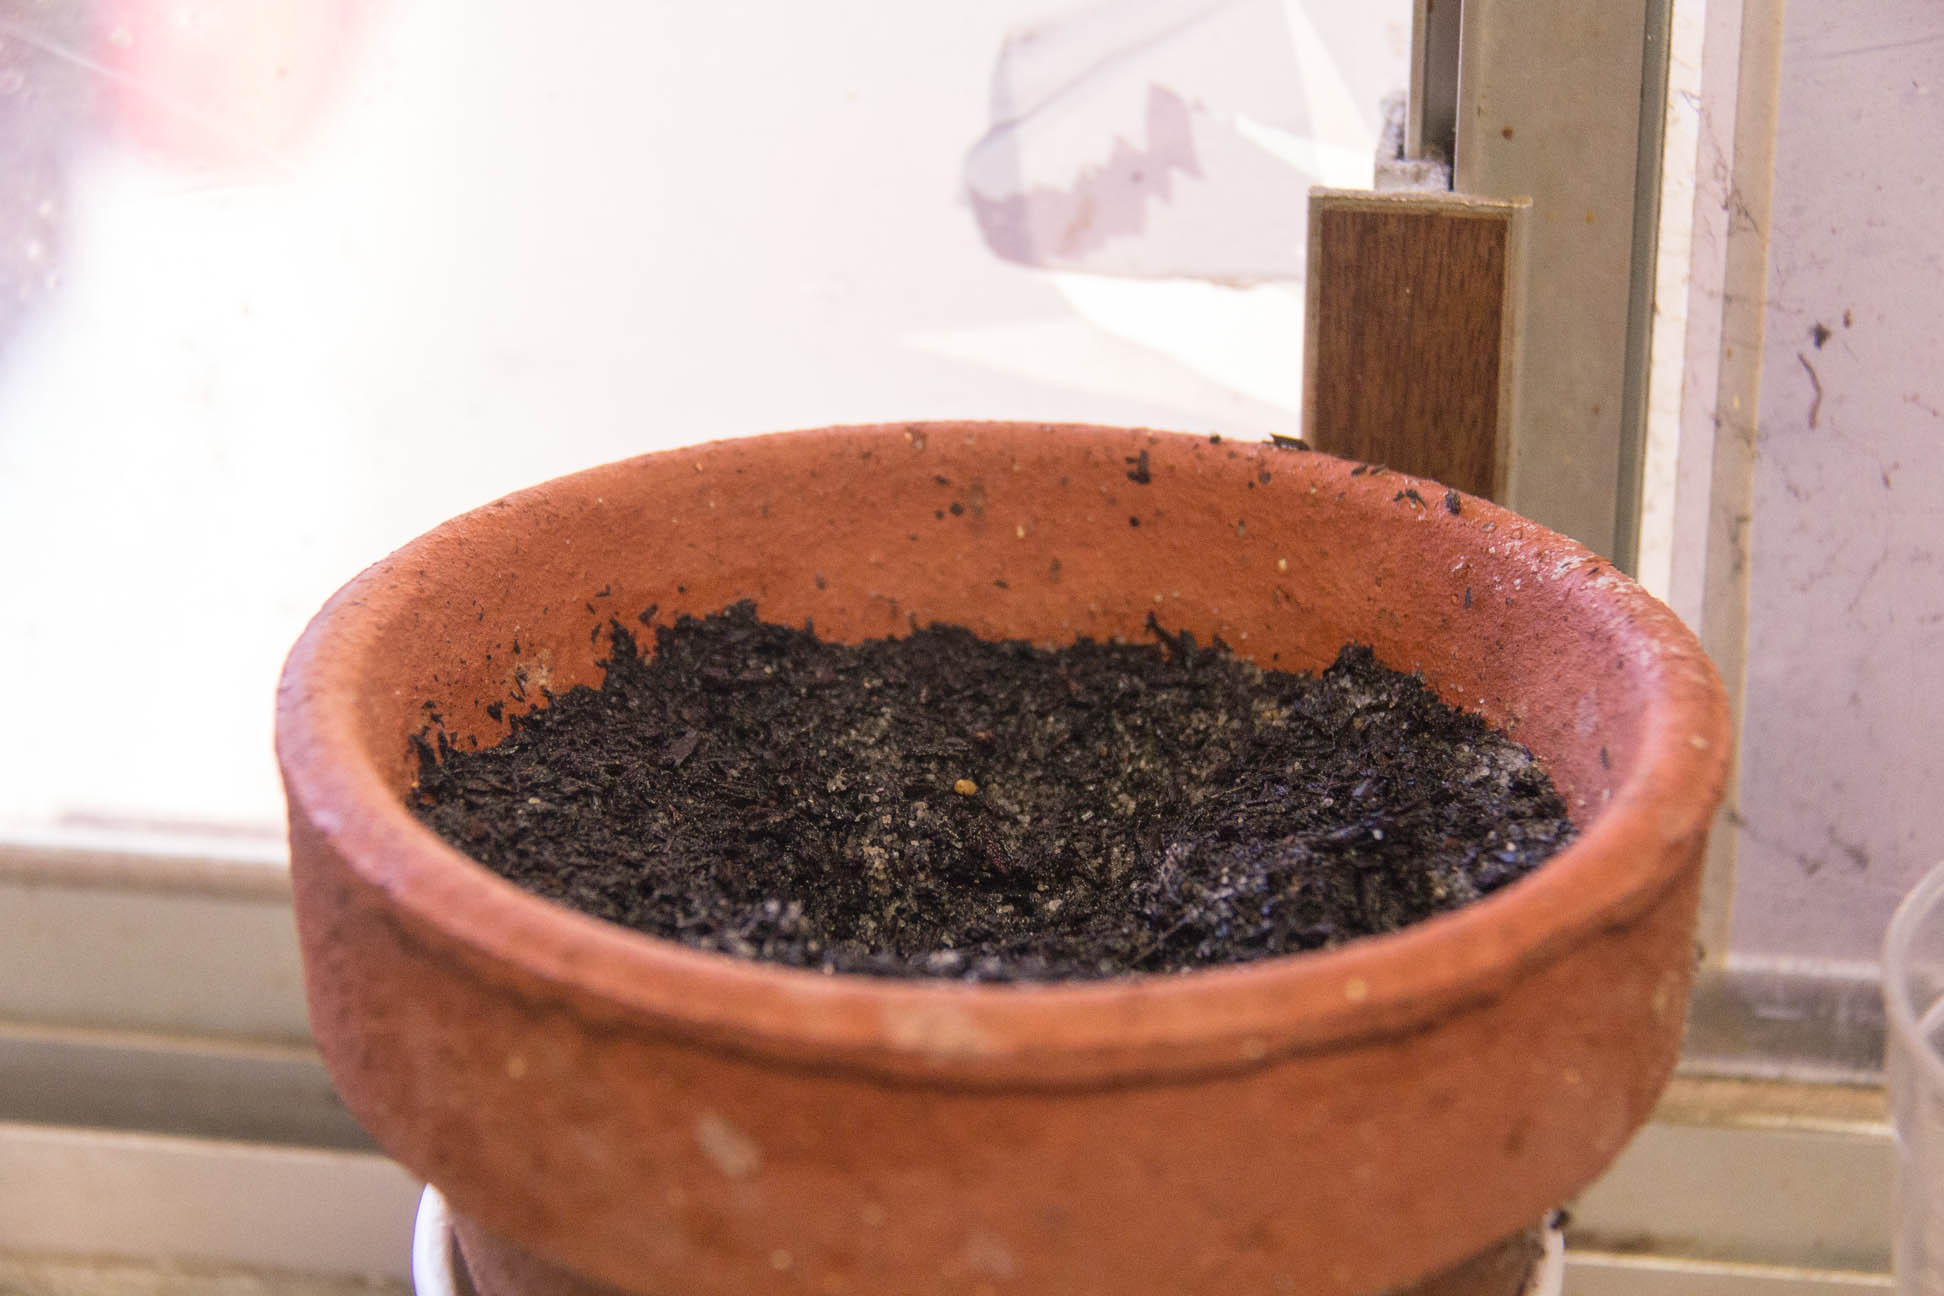 12/01/15 Day 12: Lychee seed germination experimentation No change in the seeds potted straight into the soil